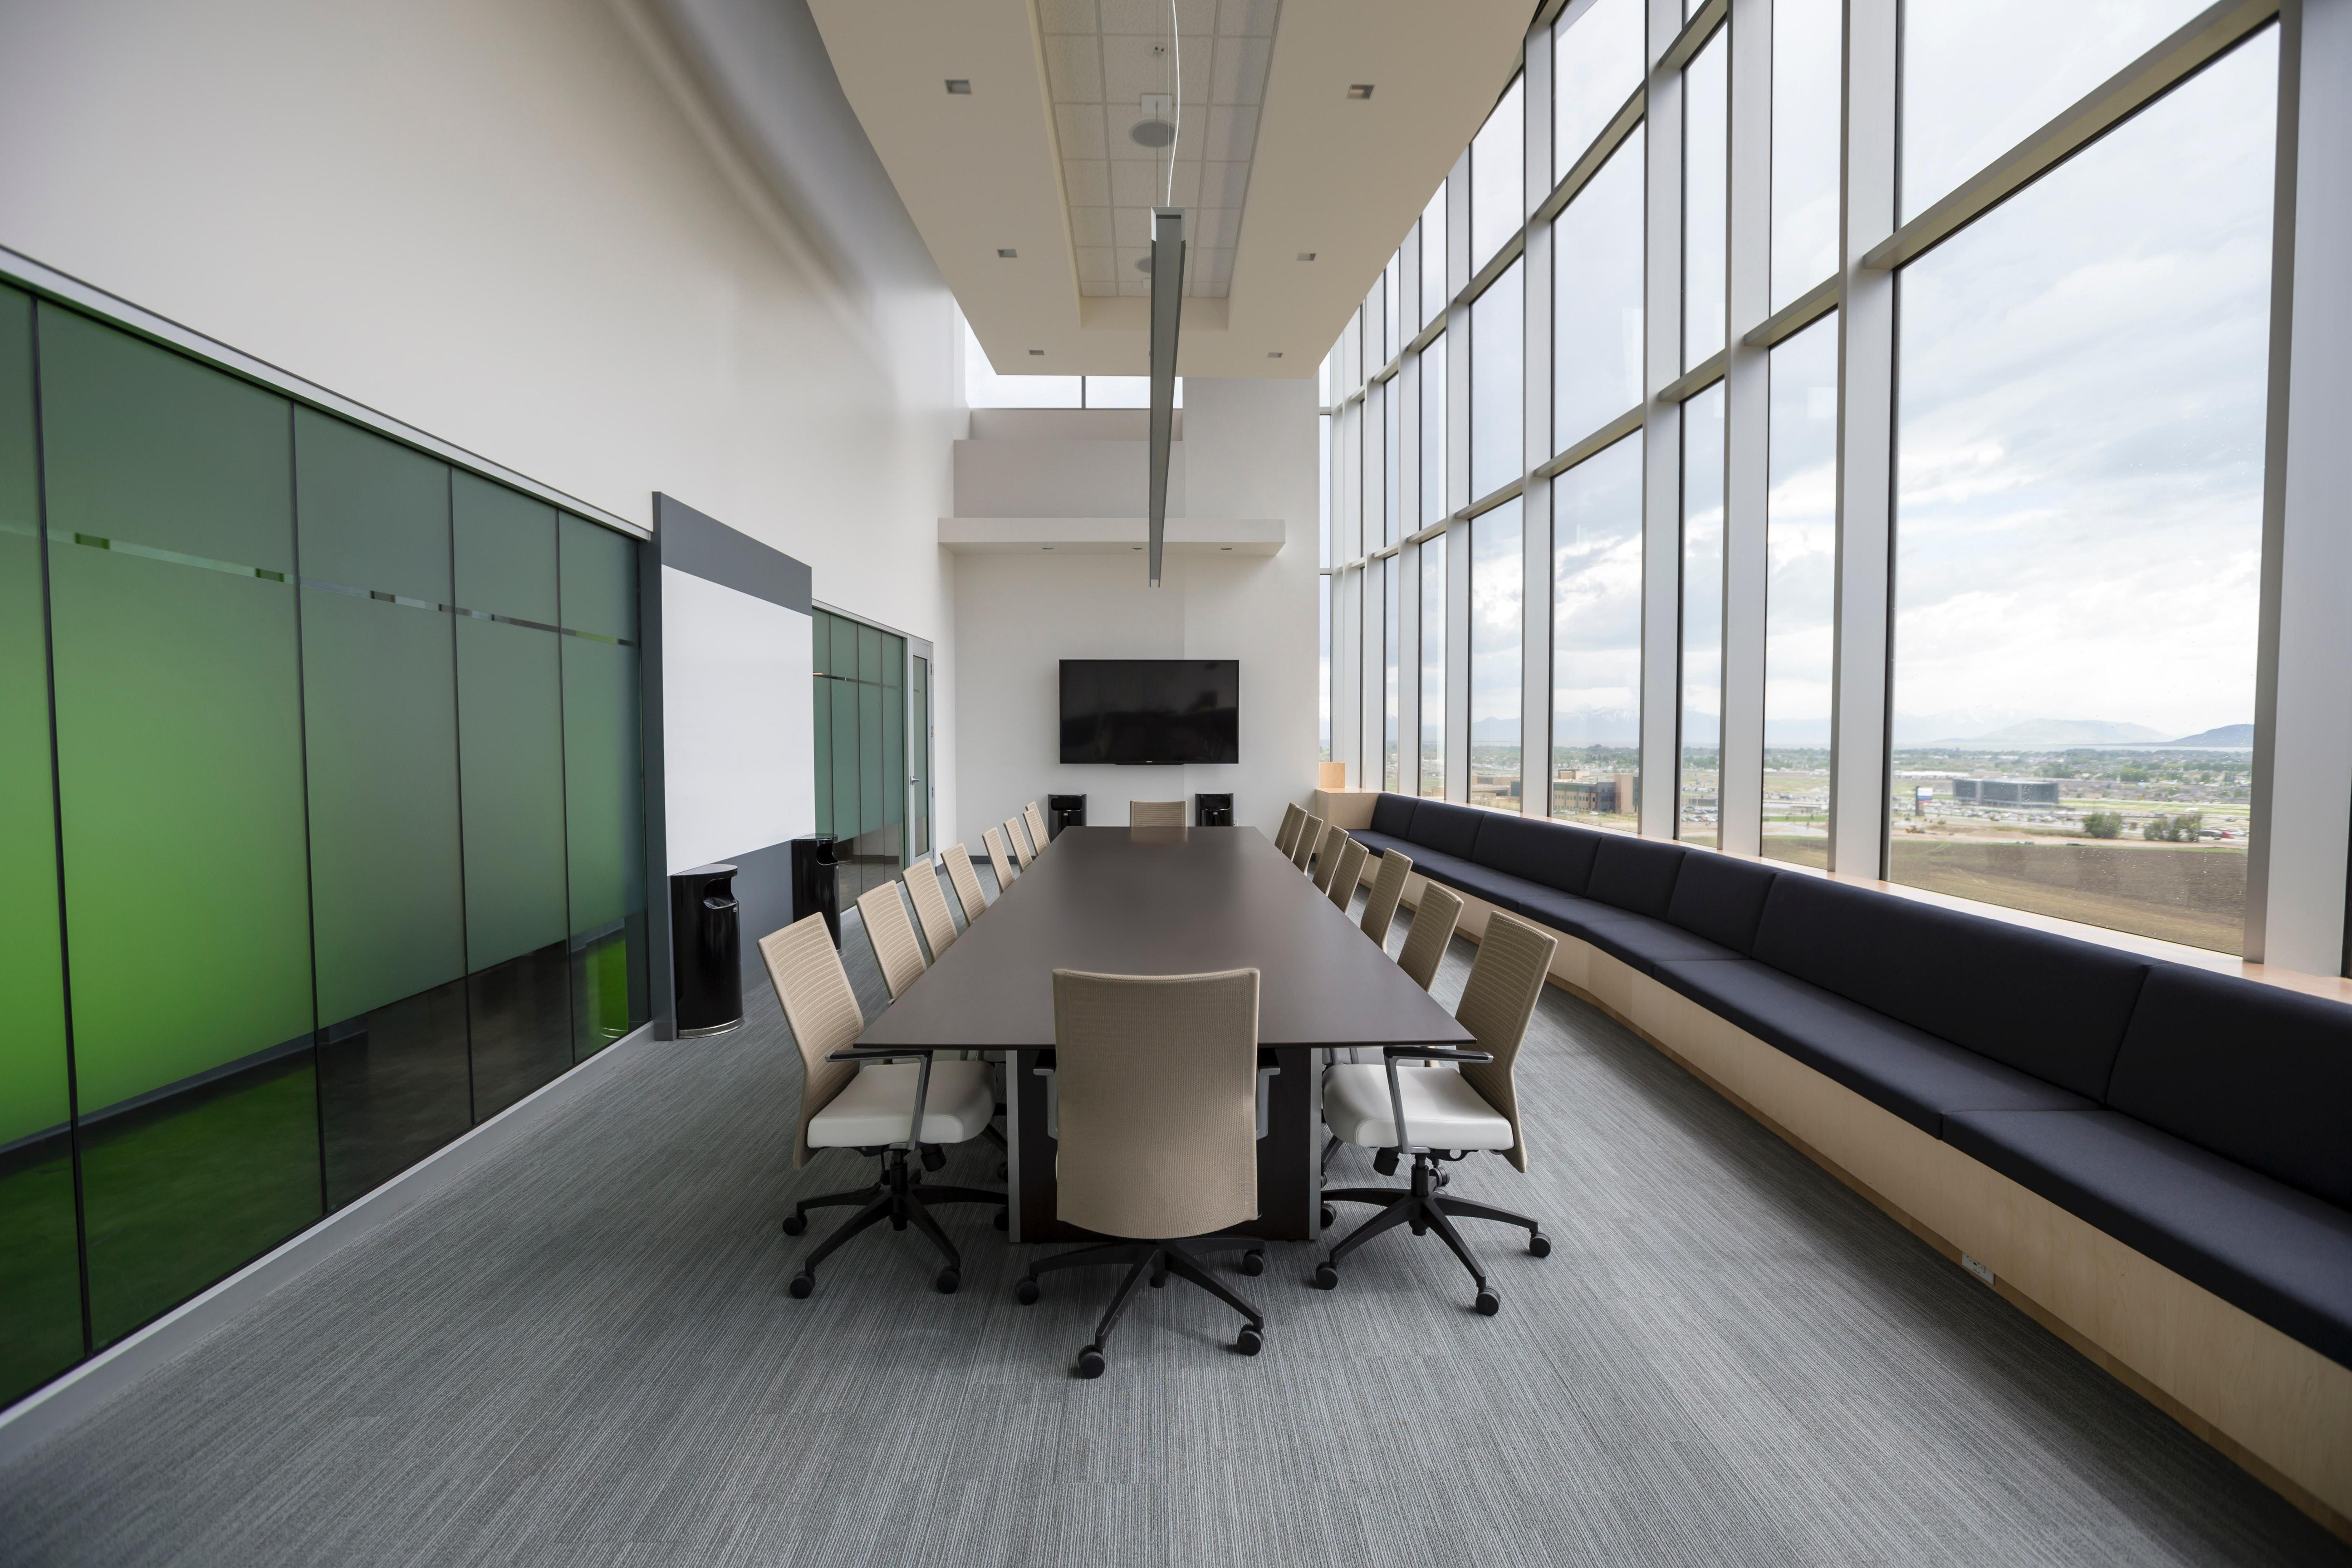 commercial building with brown conference table in the center of the floor